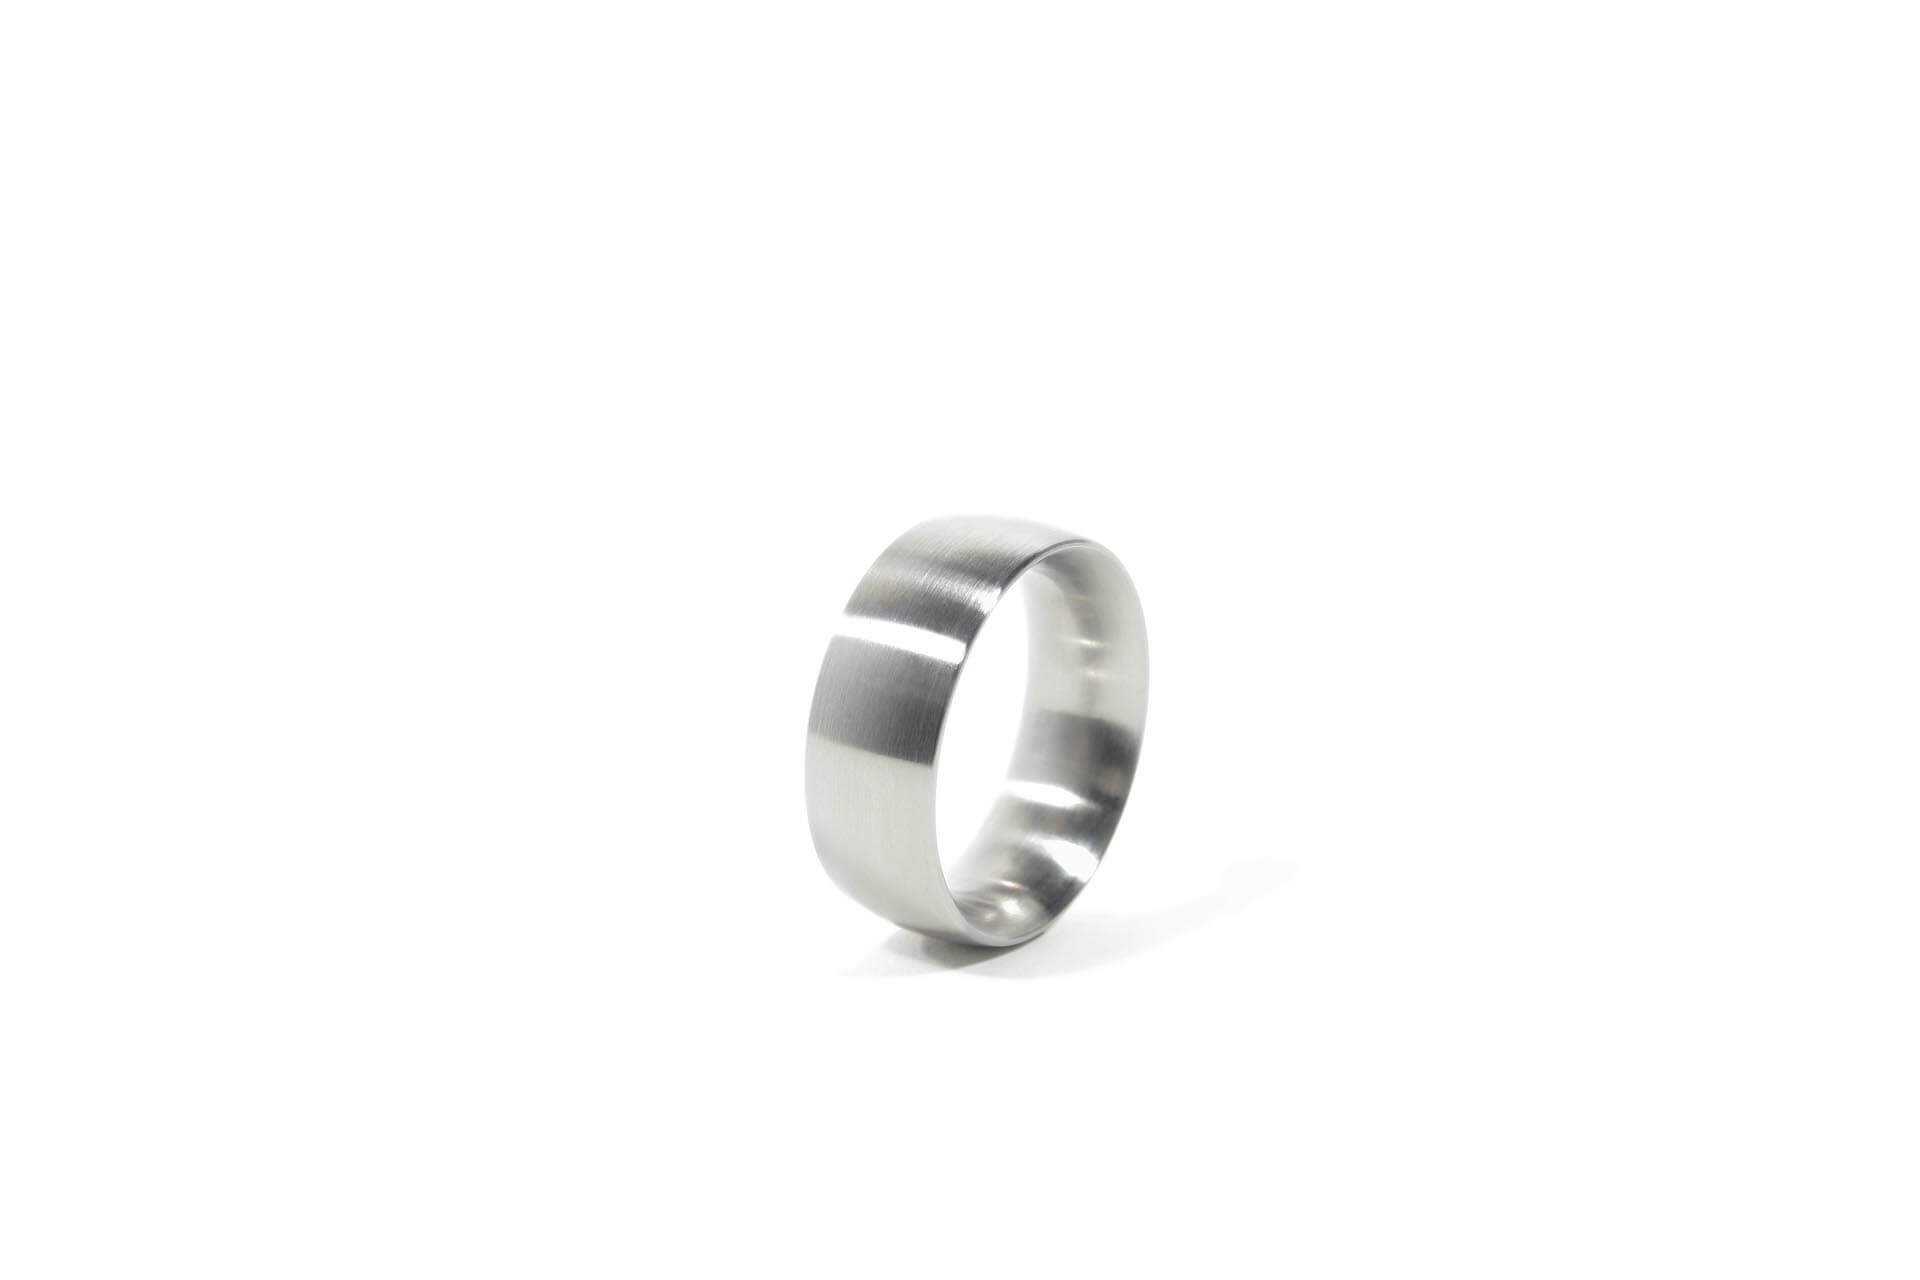 Stainless steel oval ring, top view.